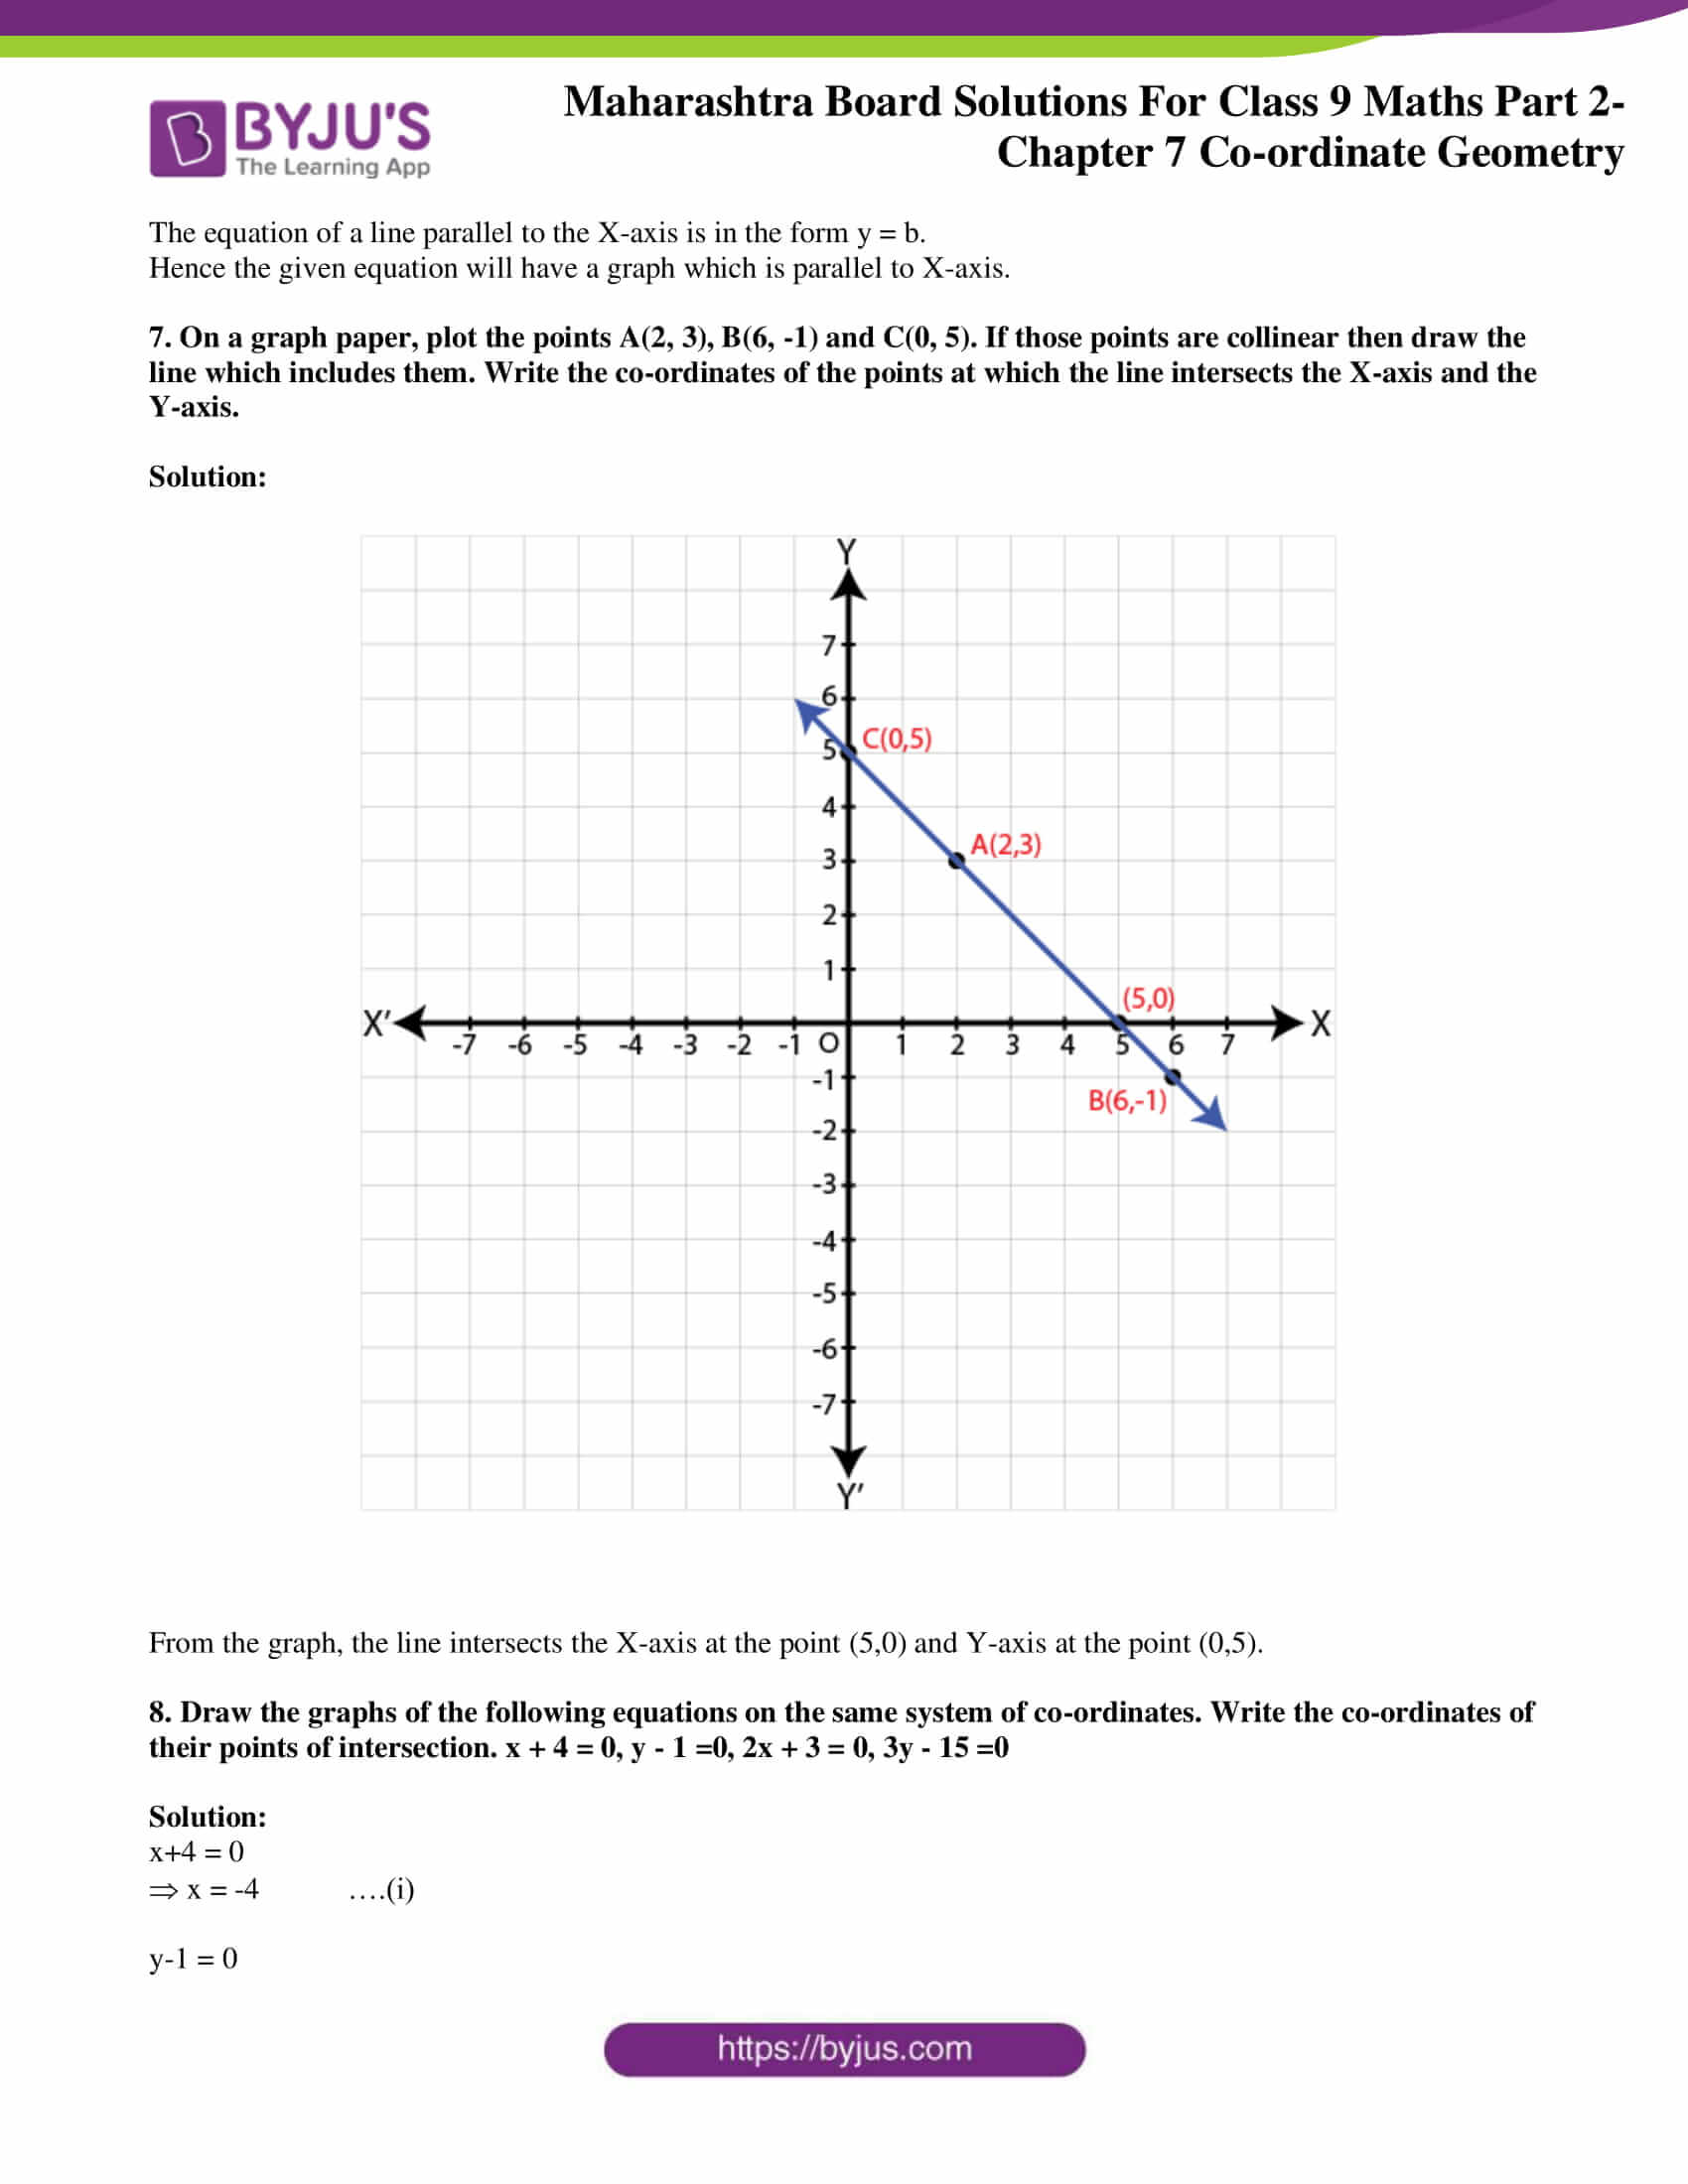 msbshse solutions for class 9 maths part 2 chapter 7 05